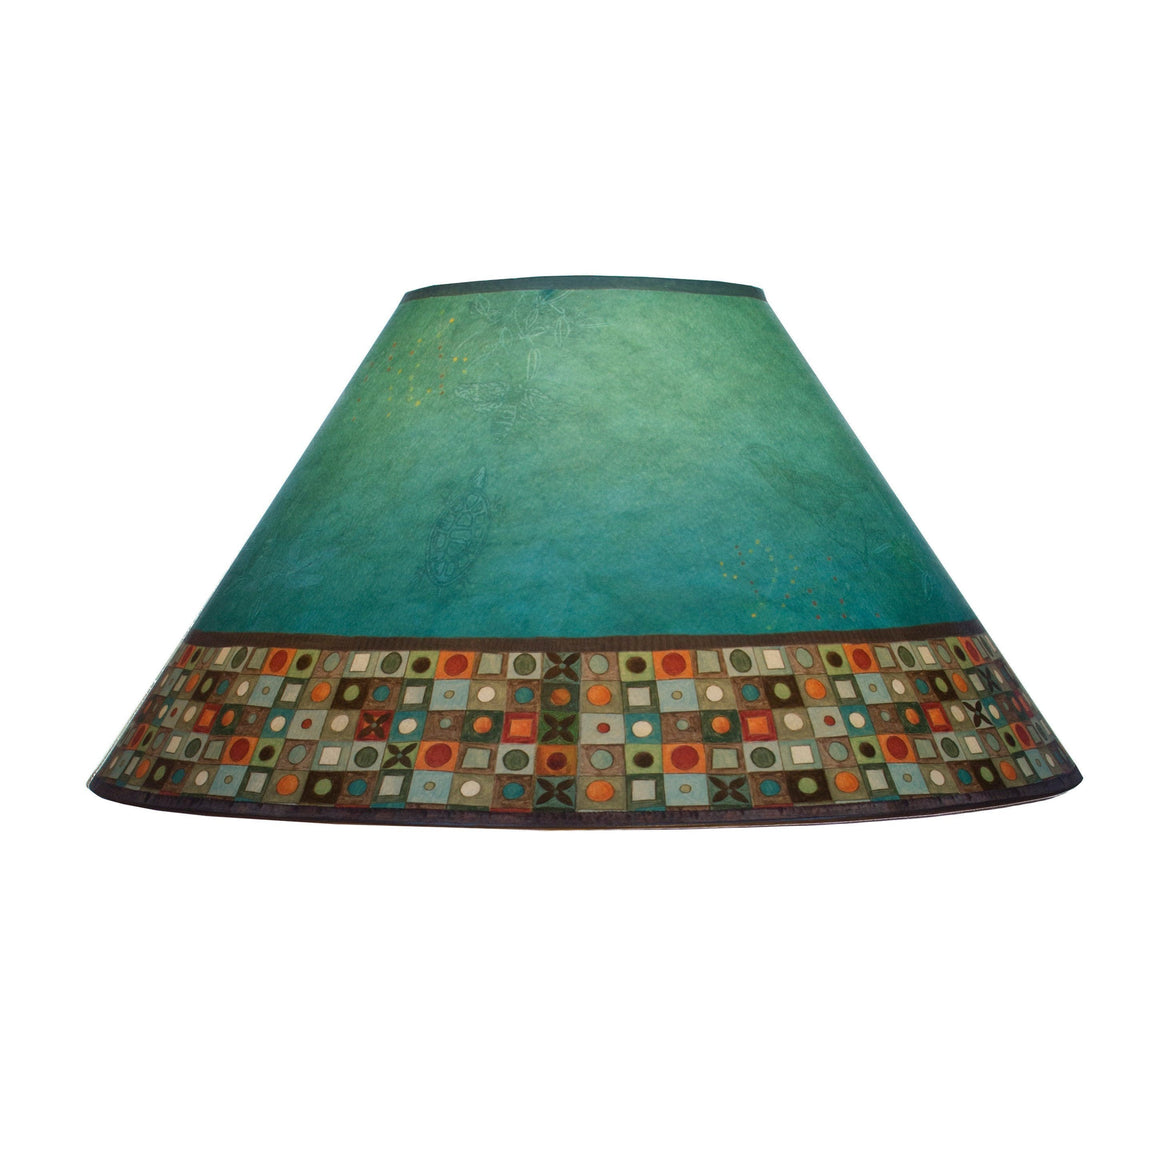 Large Conical Lamp Shade in Jade Mosaic